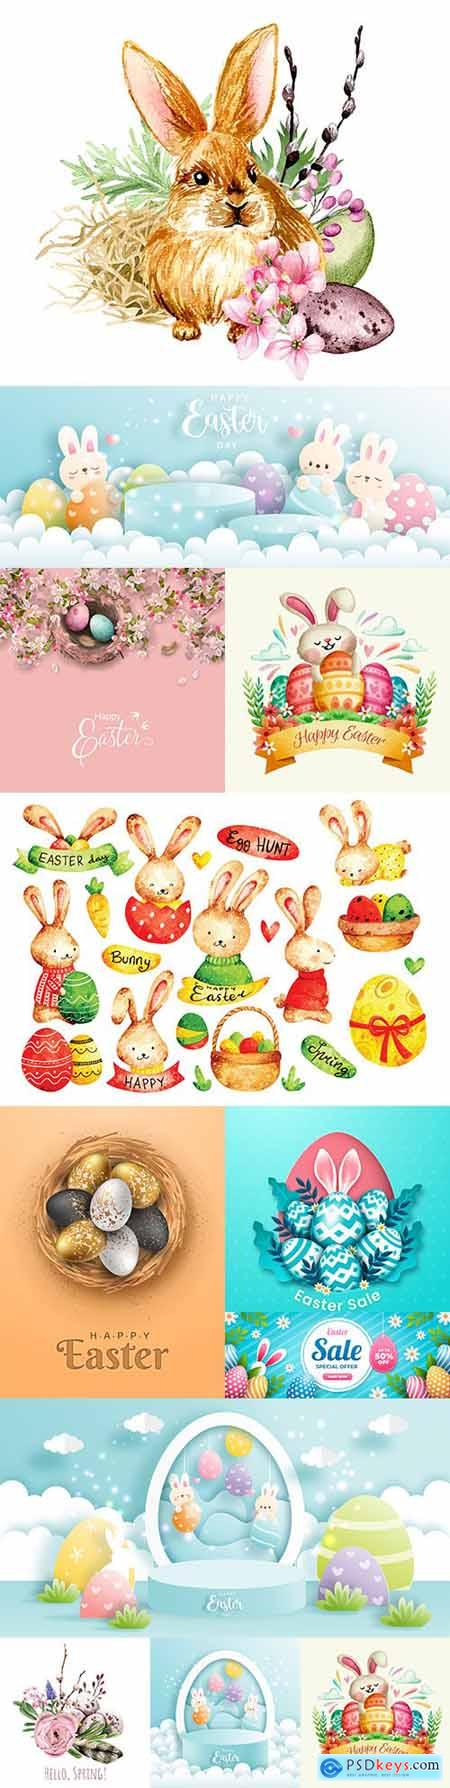 Happy Easter illustrations bunny and elements design 6